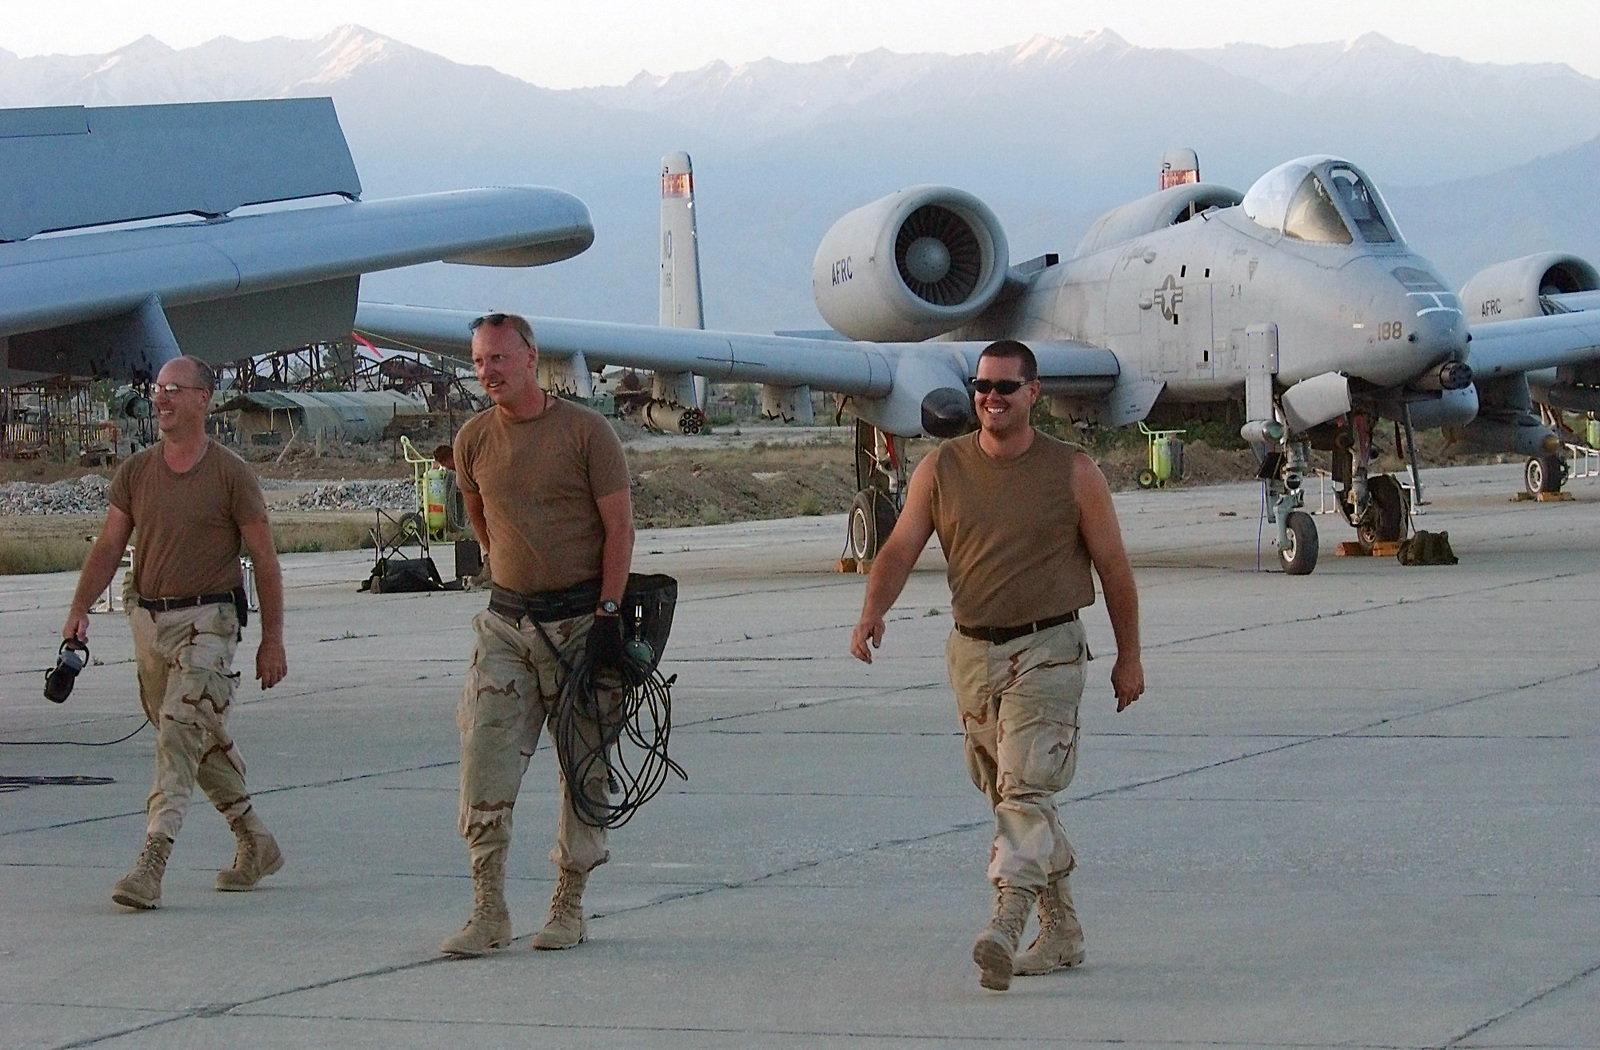 US Air Force Reserve (USAFR) Maintenance personnel deployed at Bagram Air  Base (AB), Afghanistan, finish a